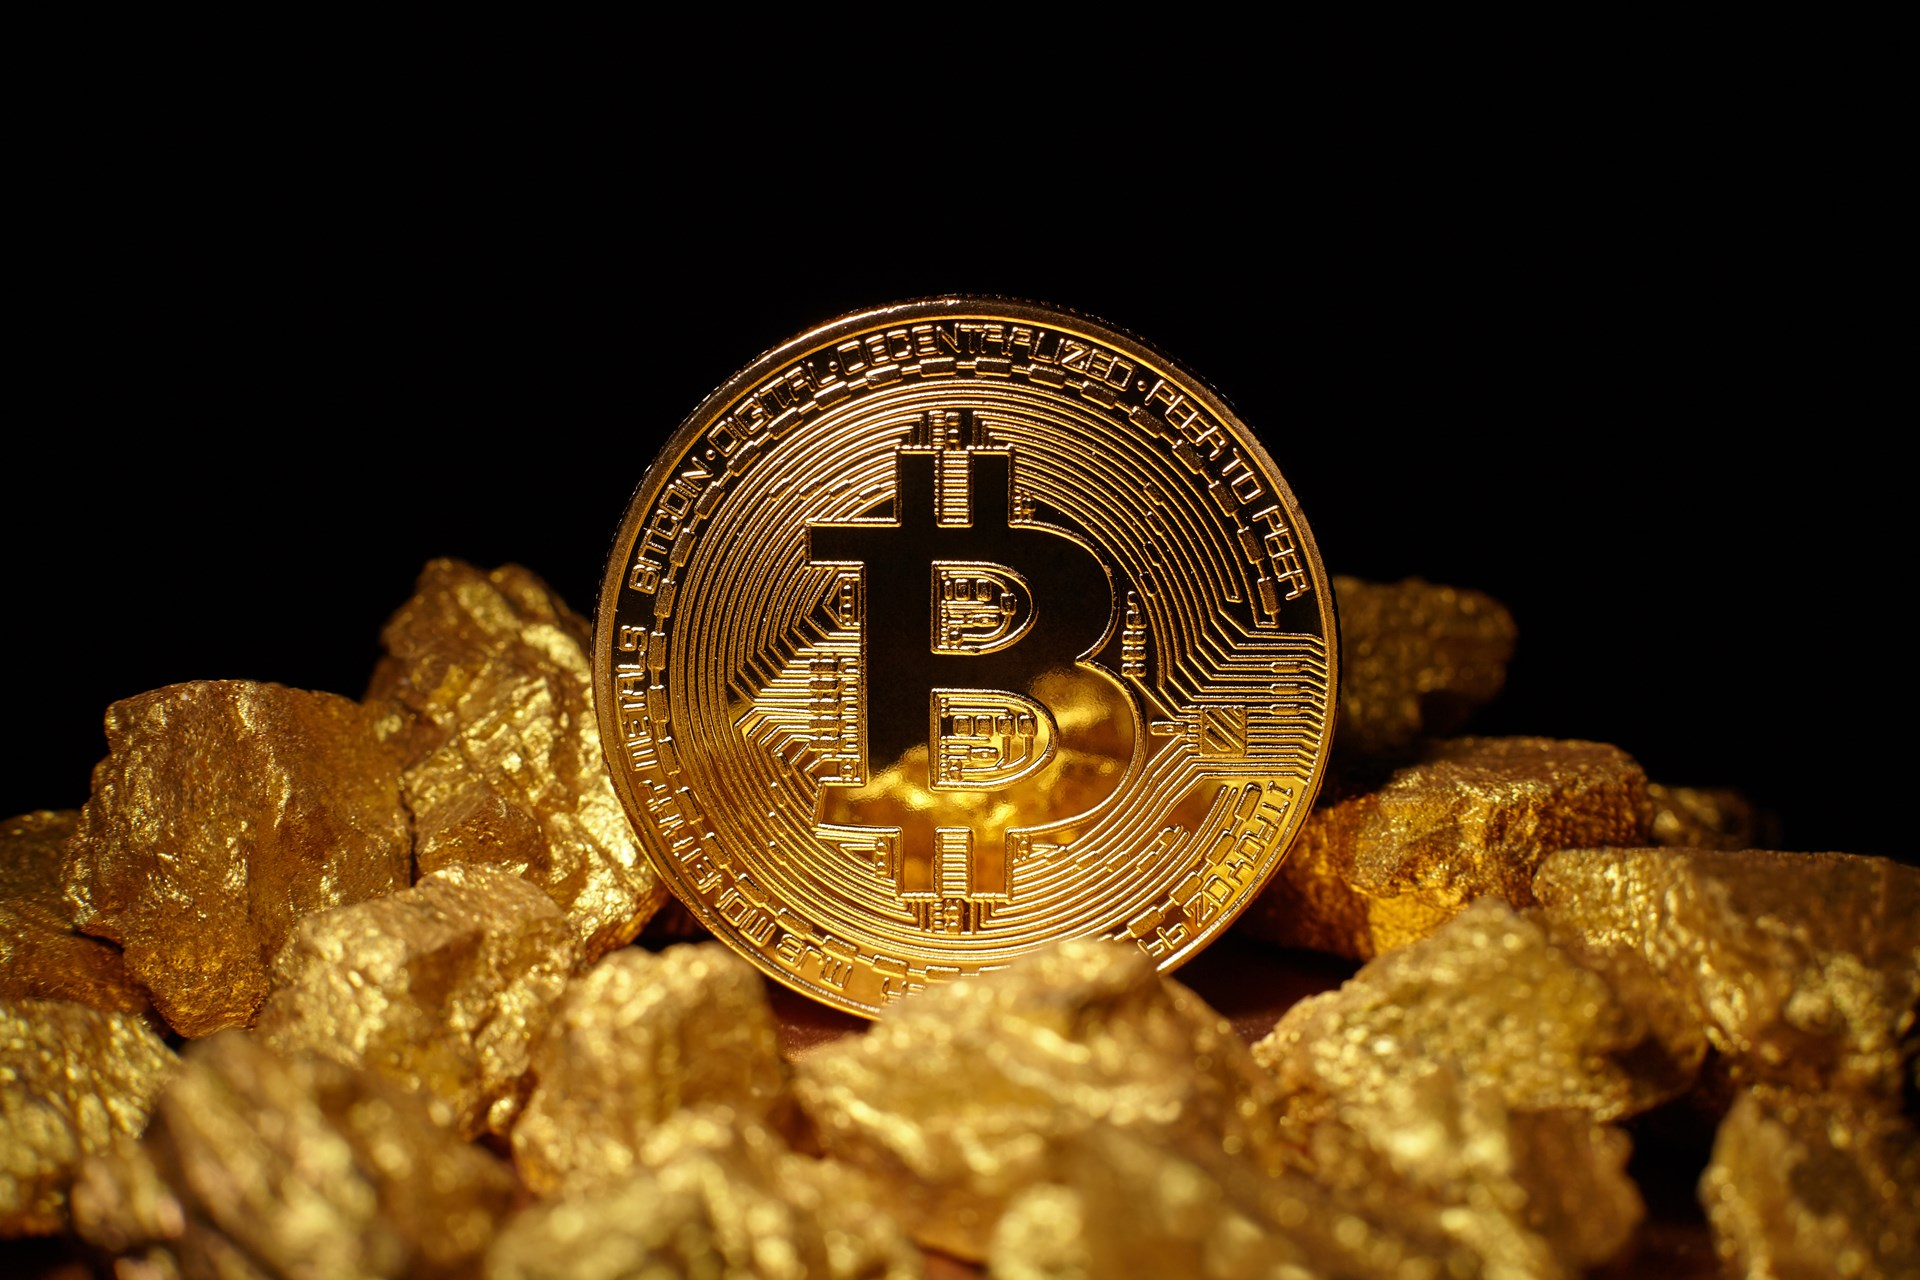 Bitcoin hits all-time high against gold as haven battle rages